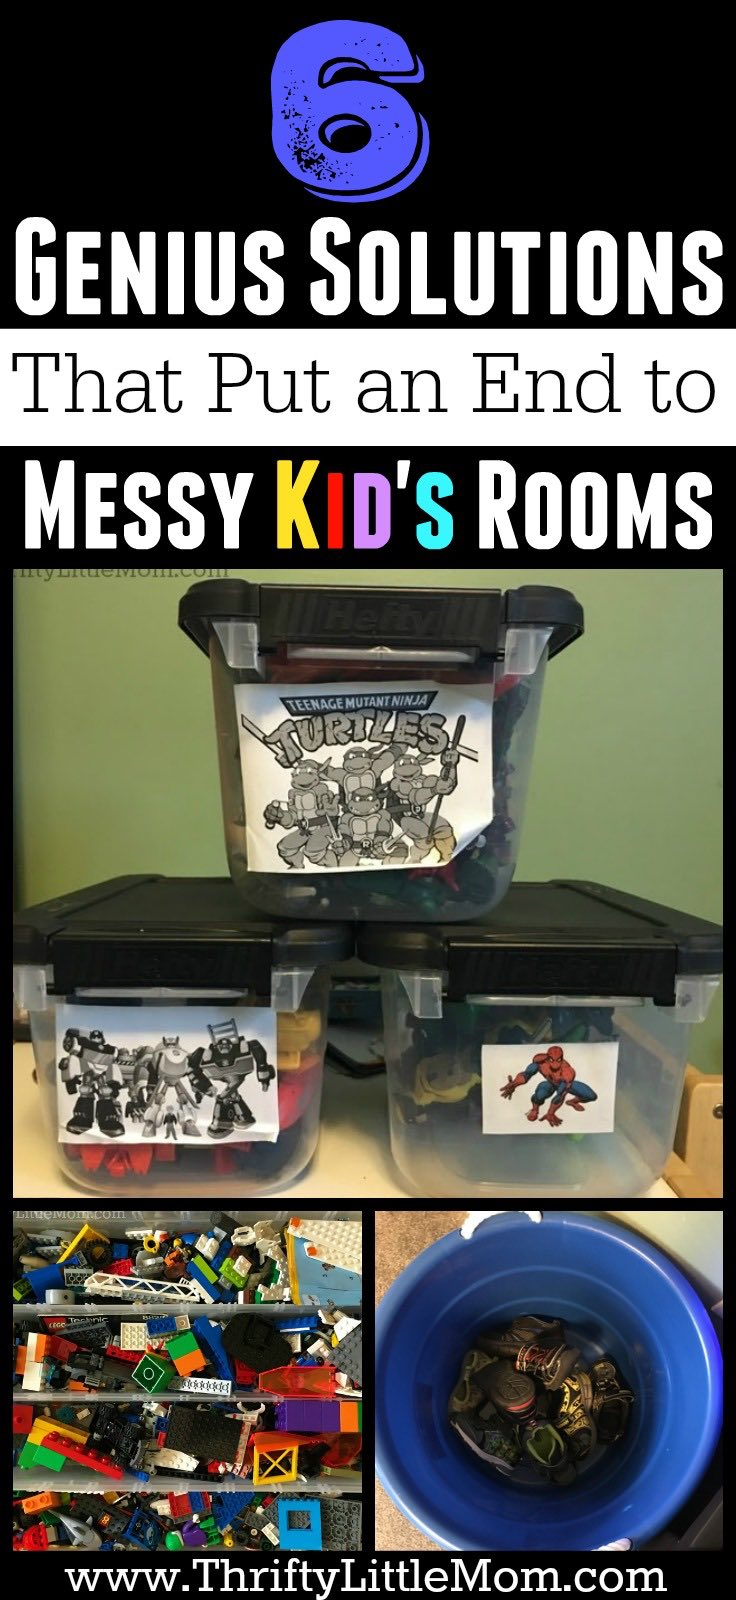 6-genius-solutions-that-put-an-end-to-messy-kids-rooms